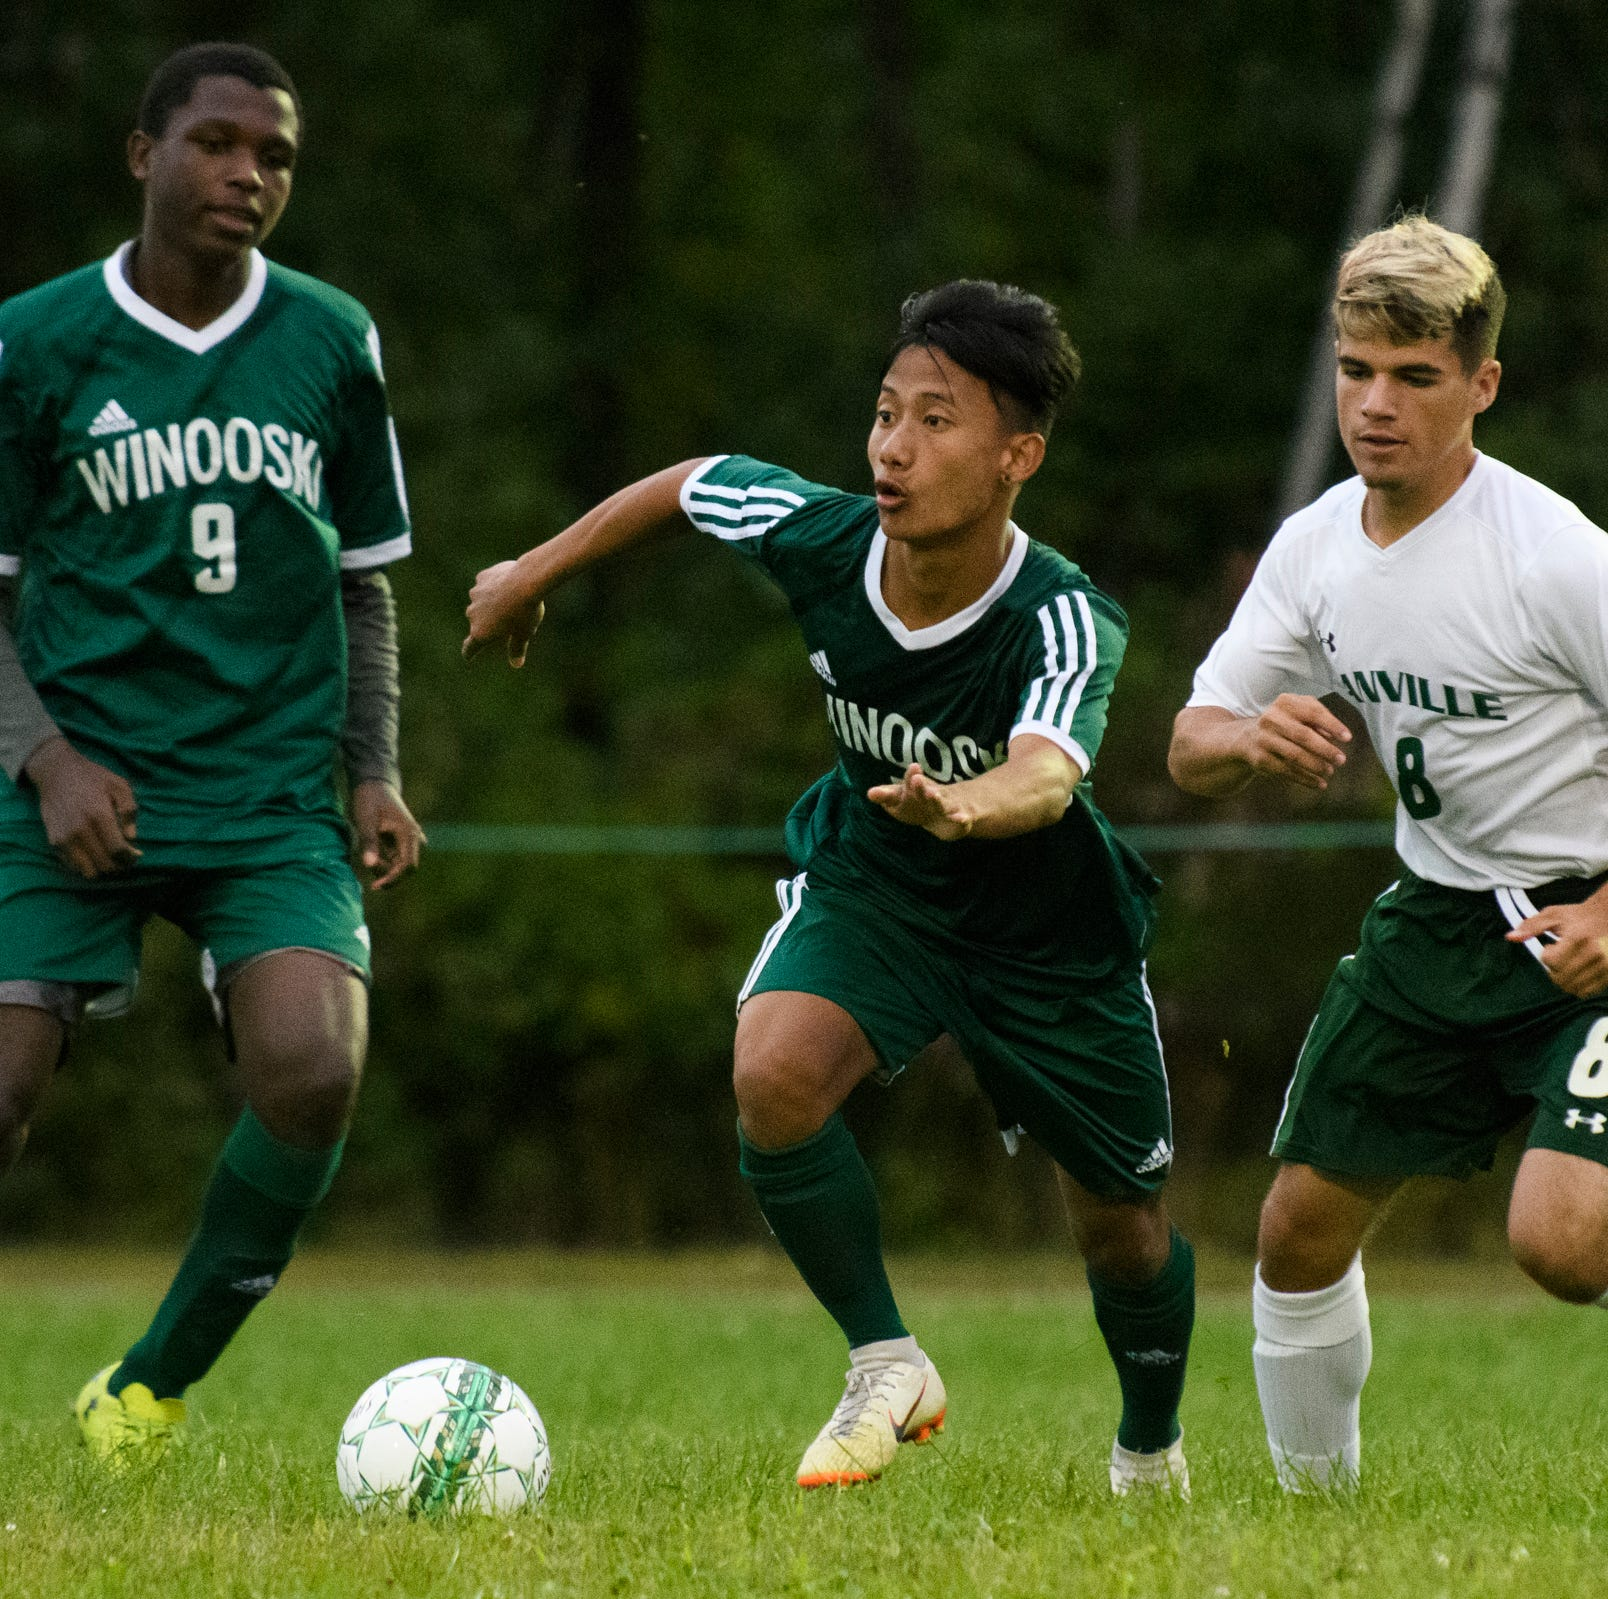 Vermont high school highlights: Winooski soccer powers past Hazen to stay undefeated